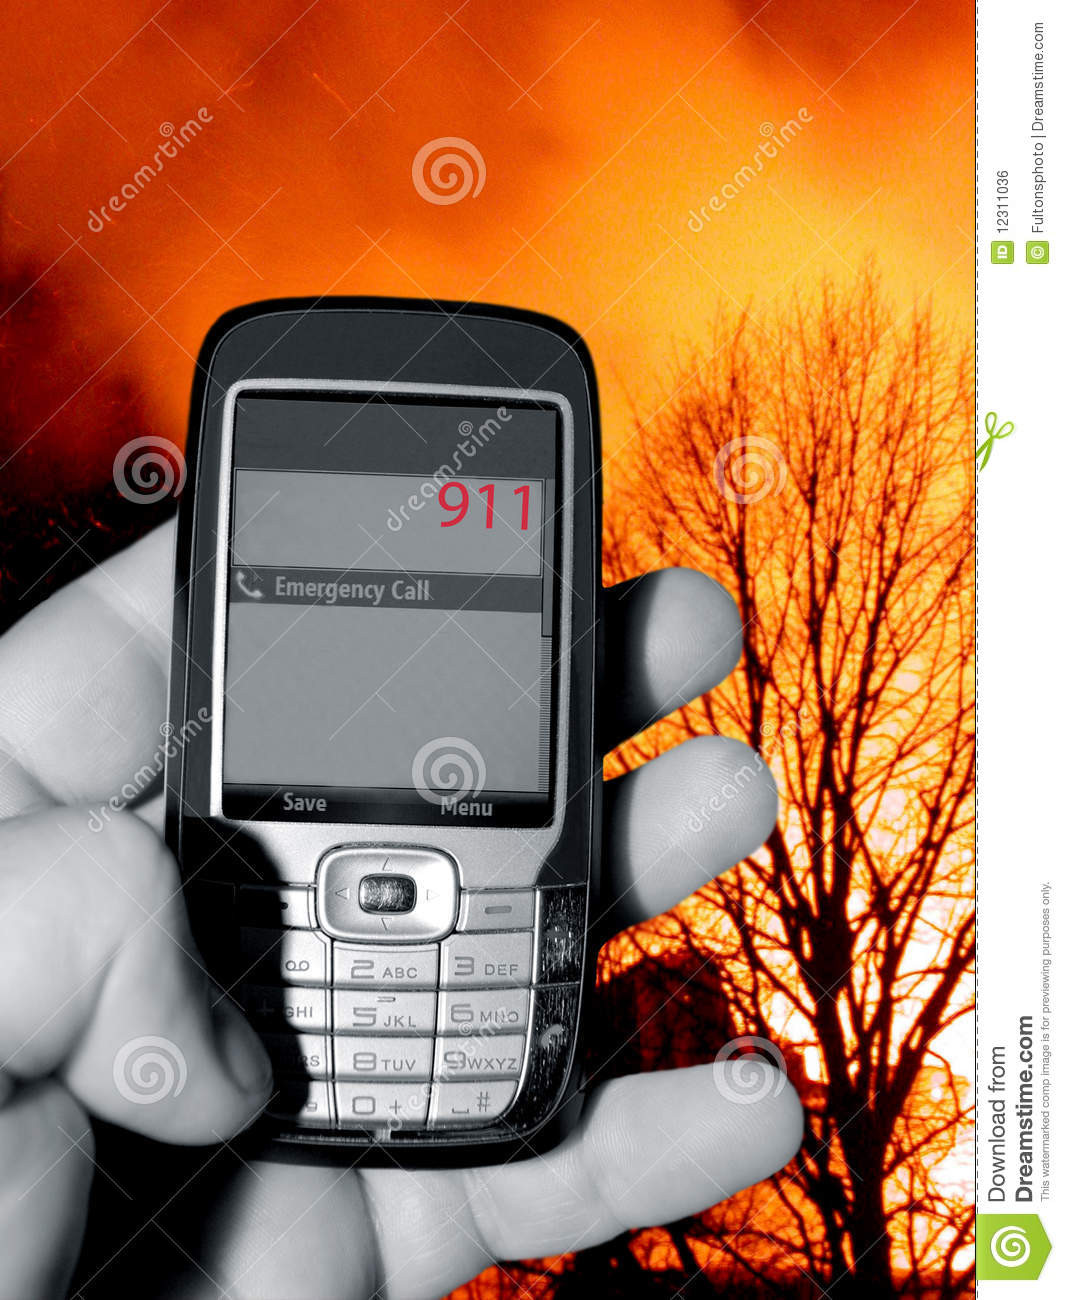 911 Emergency Telephone Call Stock Photo